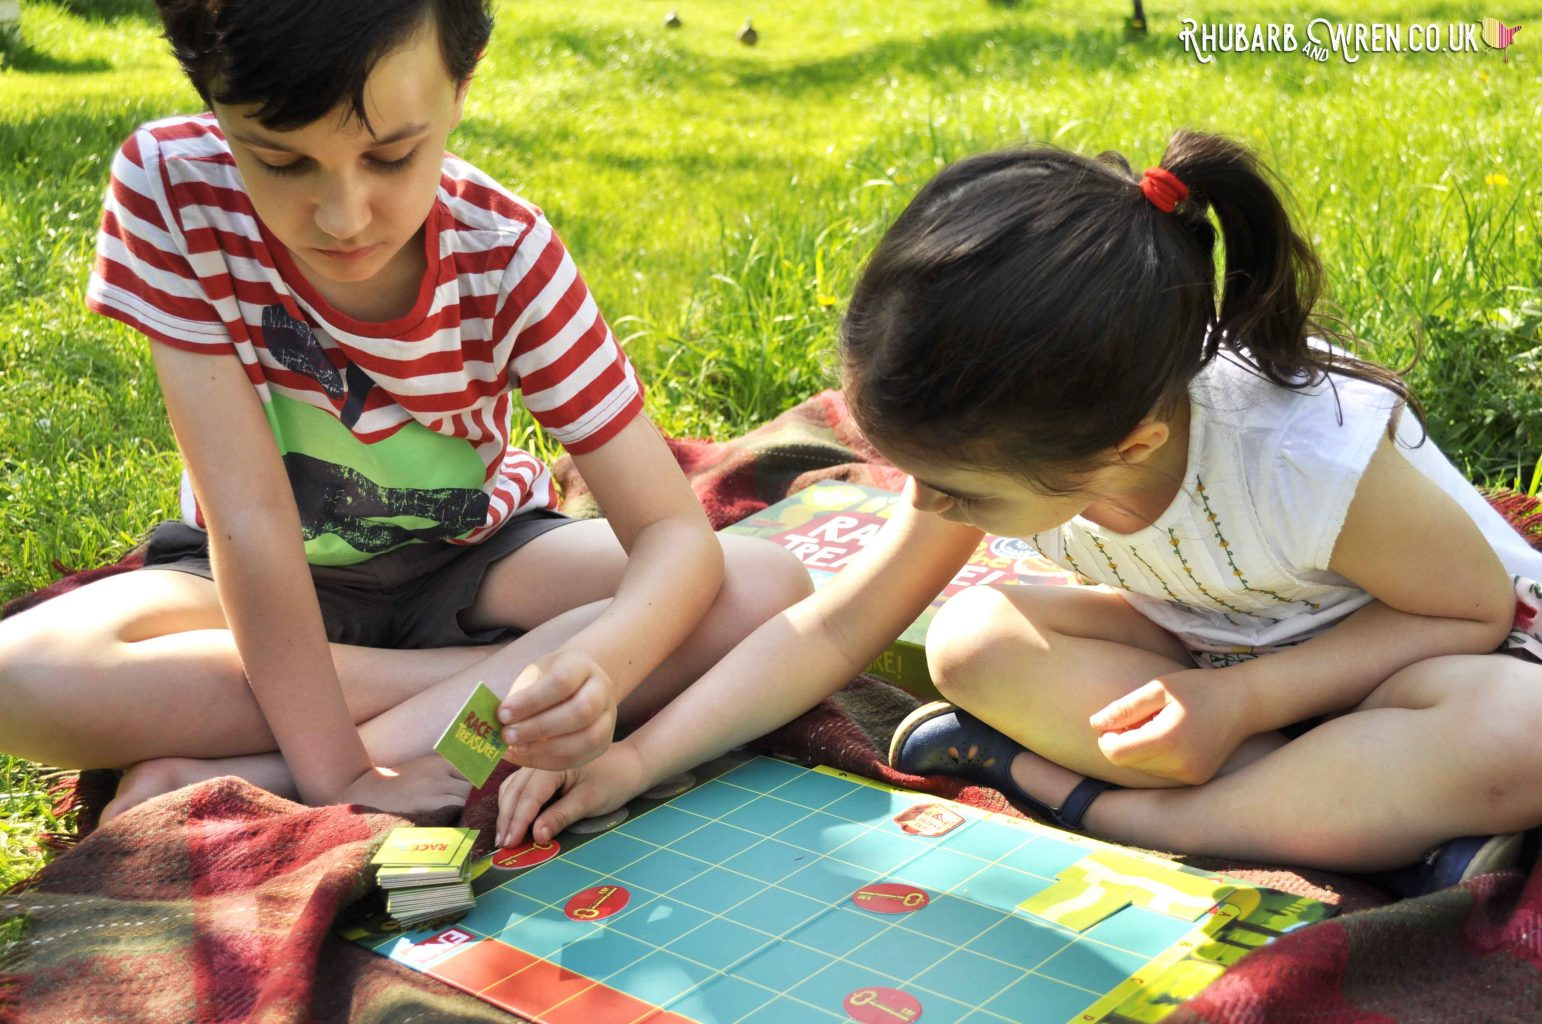 Children playing Peaceable Kingdom board game outside